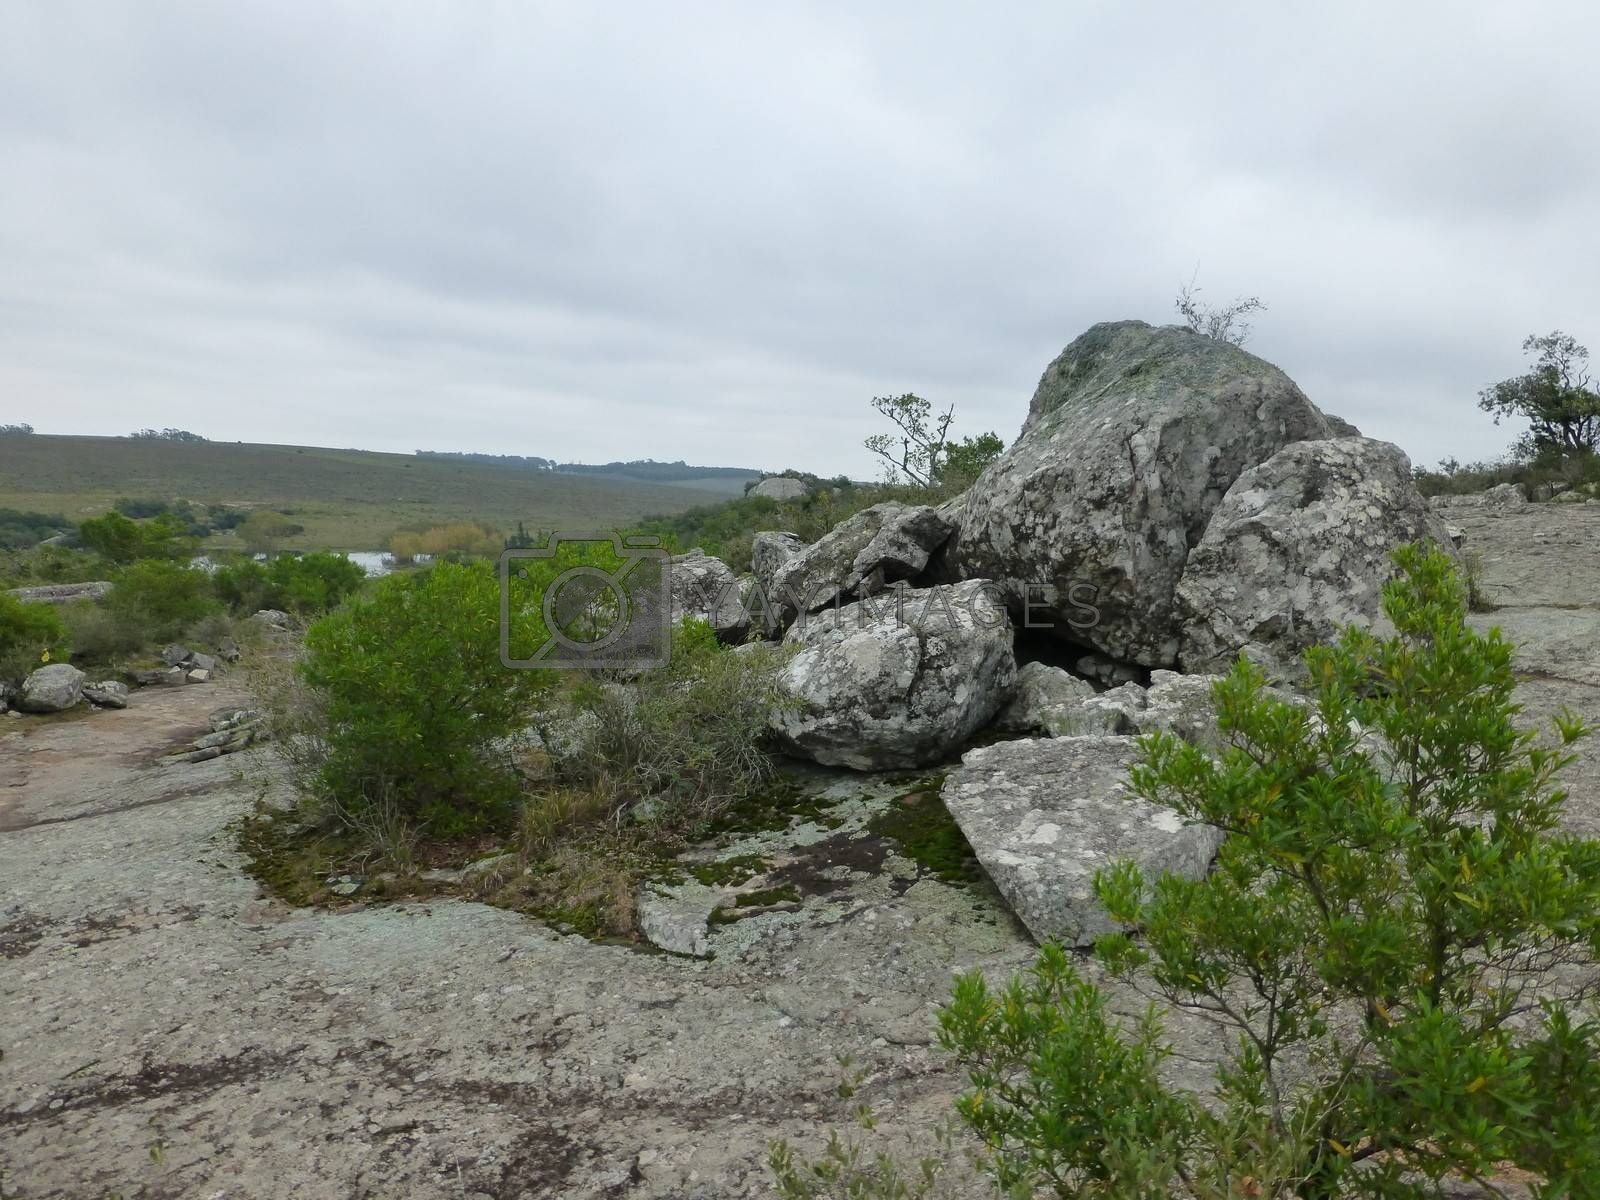 Rocks in the Countryside Landscape by DanFLCreative